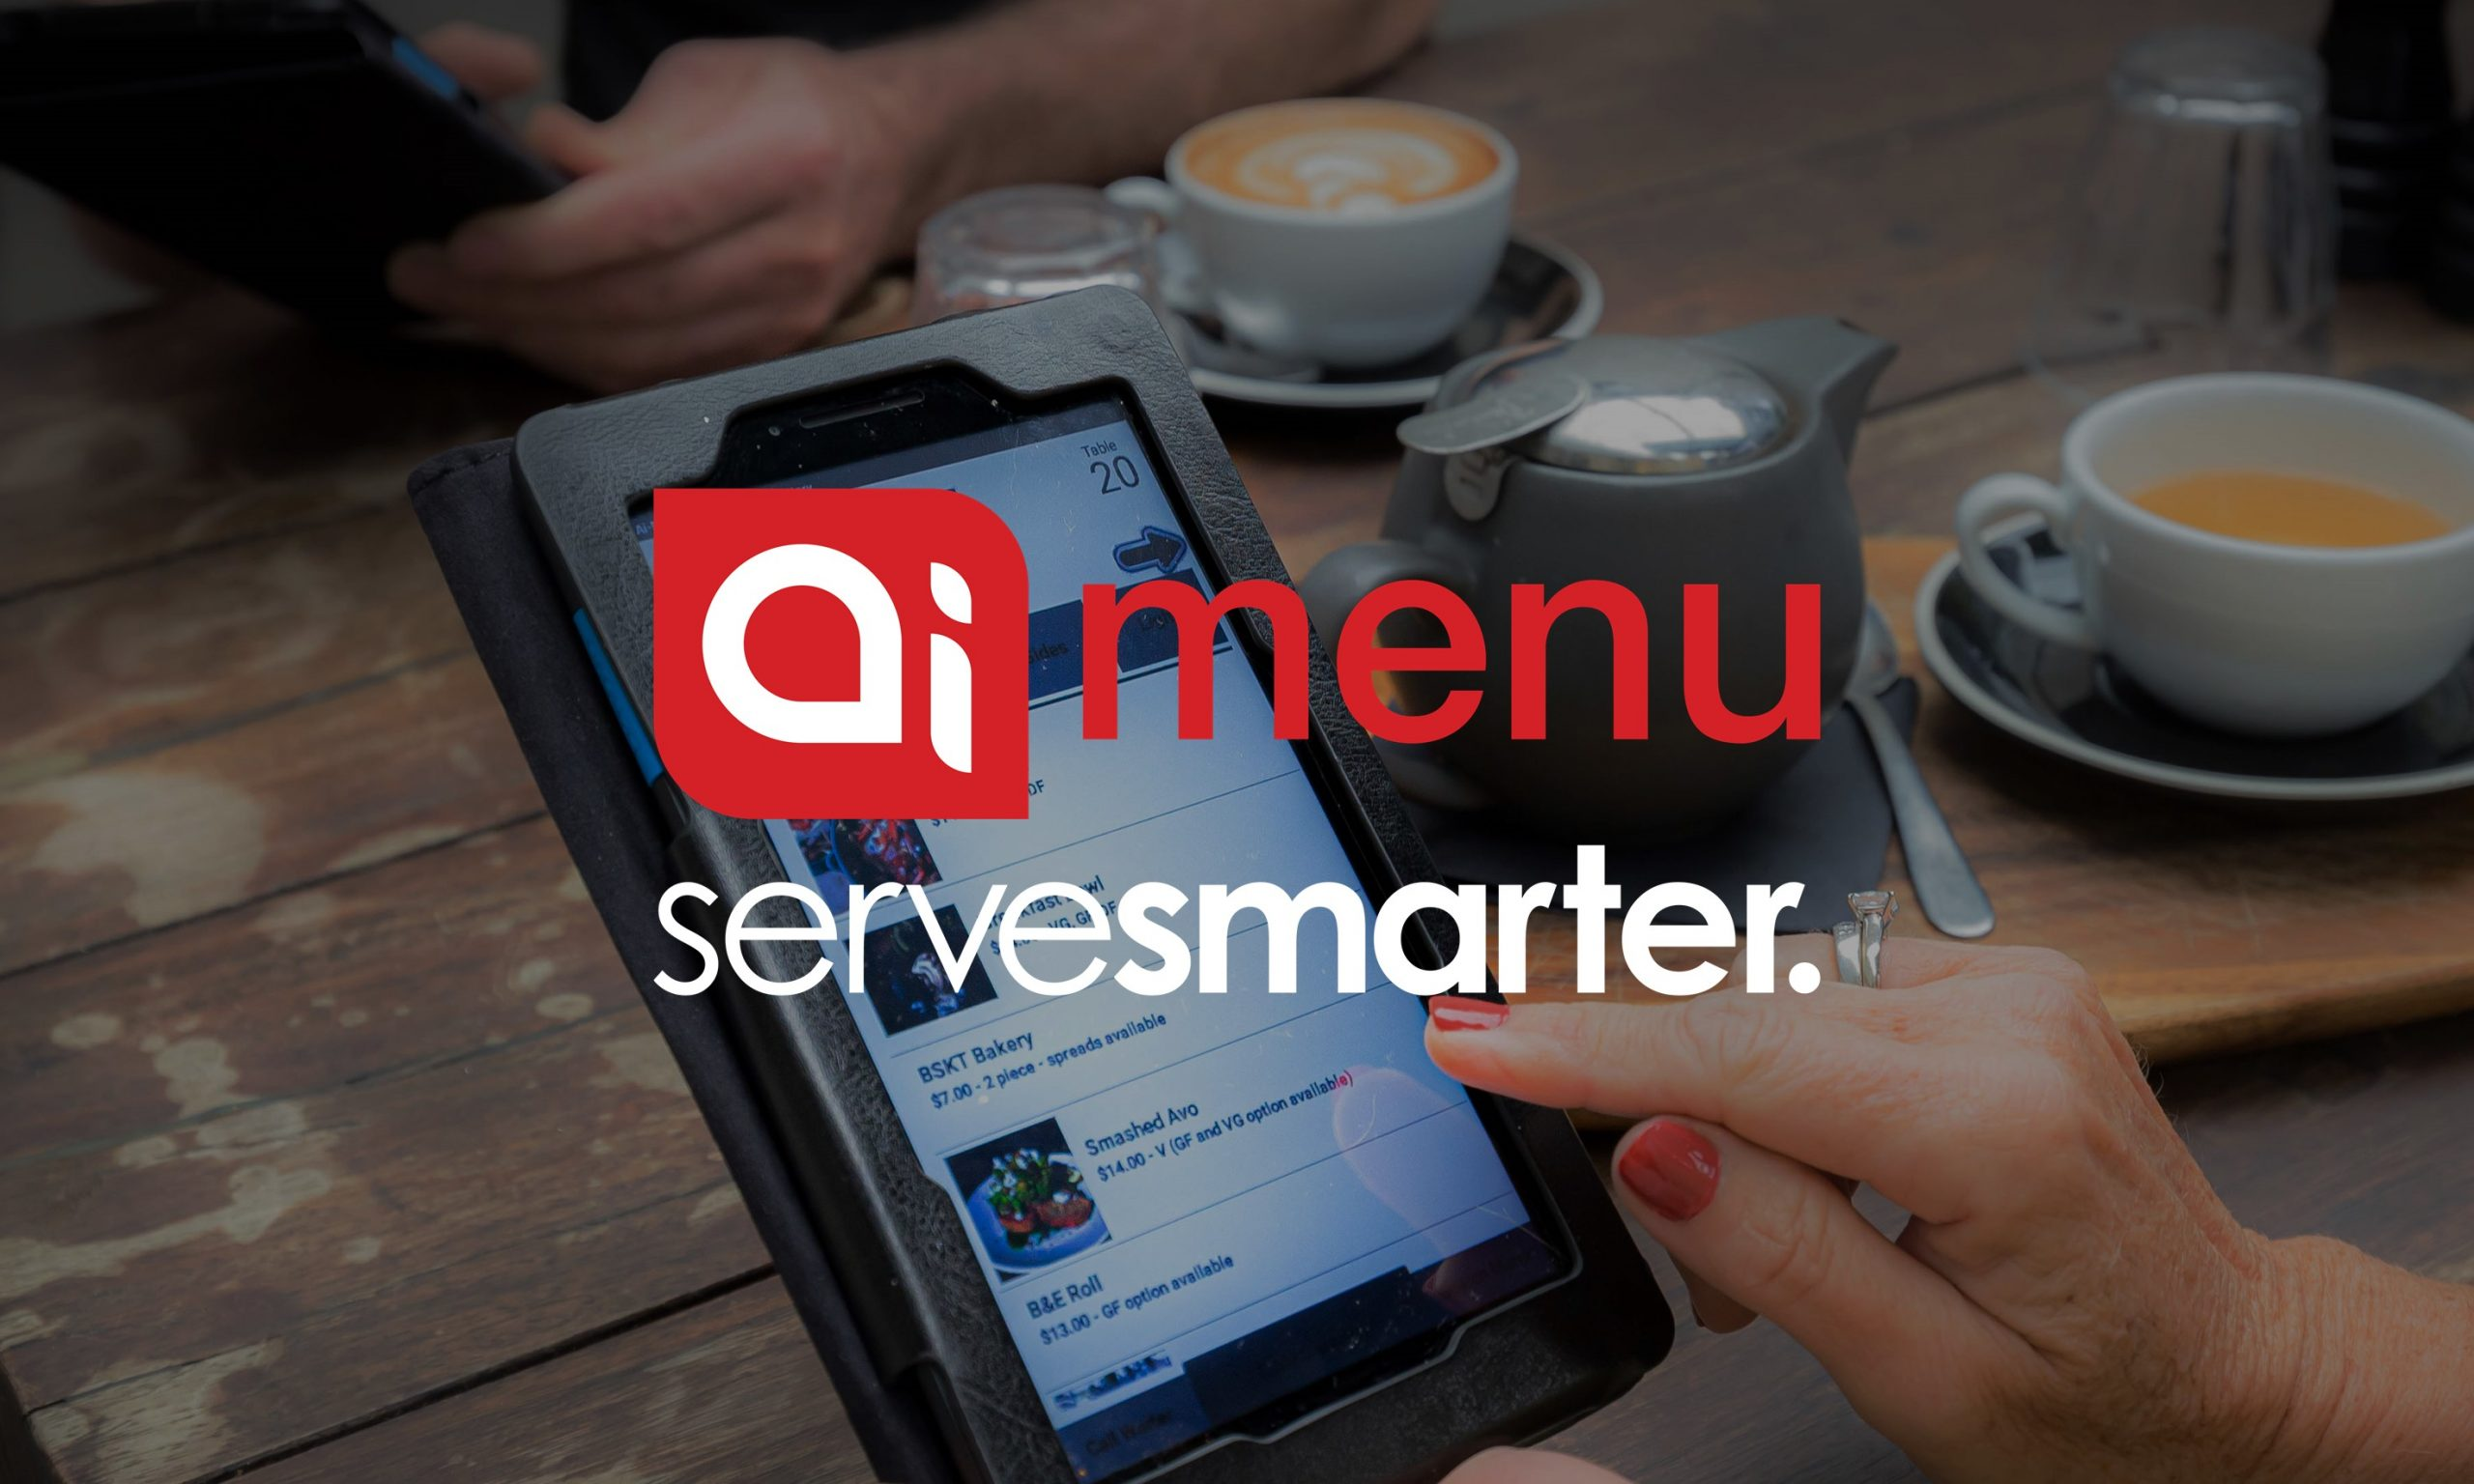 Ai-Menu is a leading innovator in hospitality technology, with solutions for online ordering, digital menus and self-ordering kiosks.